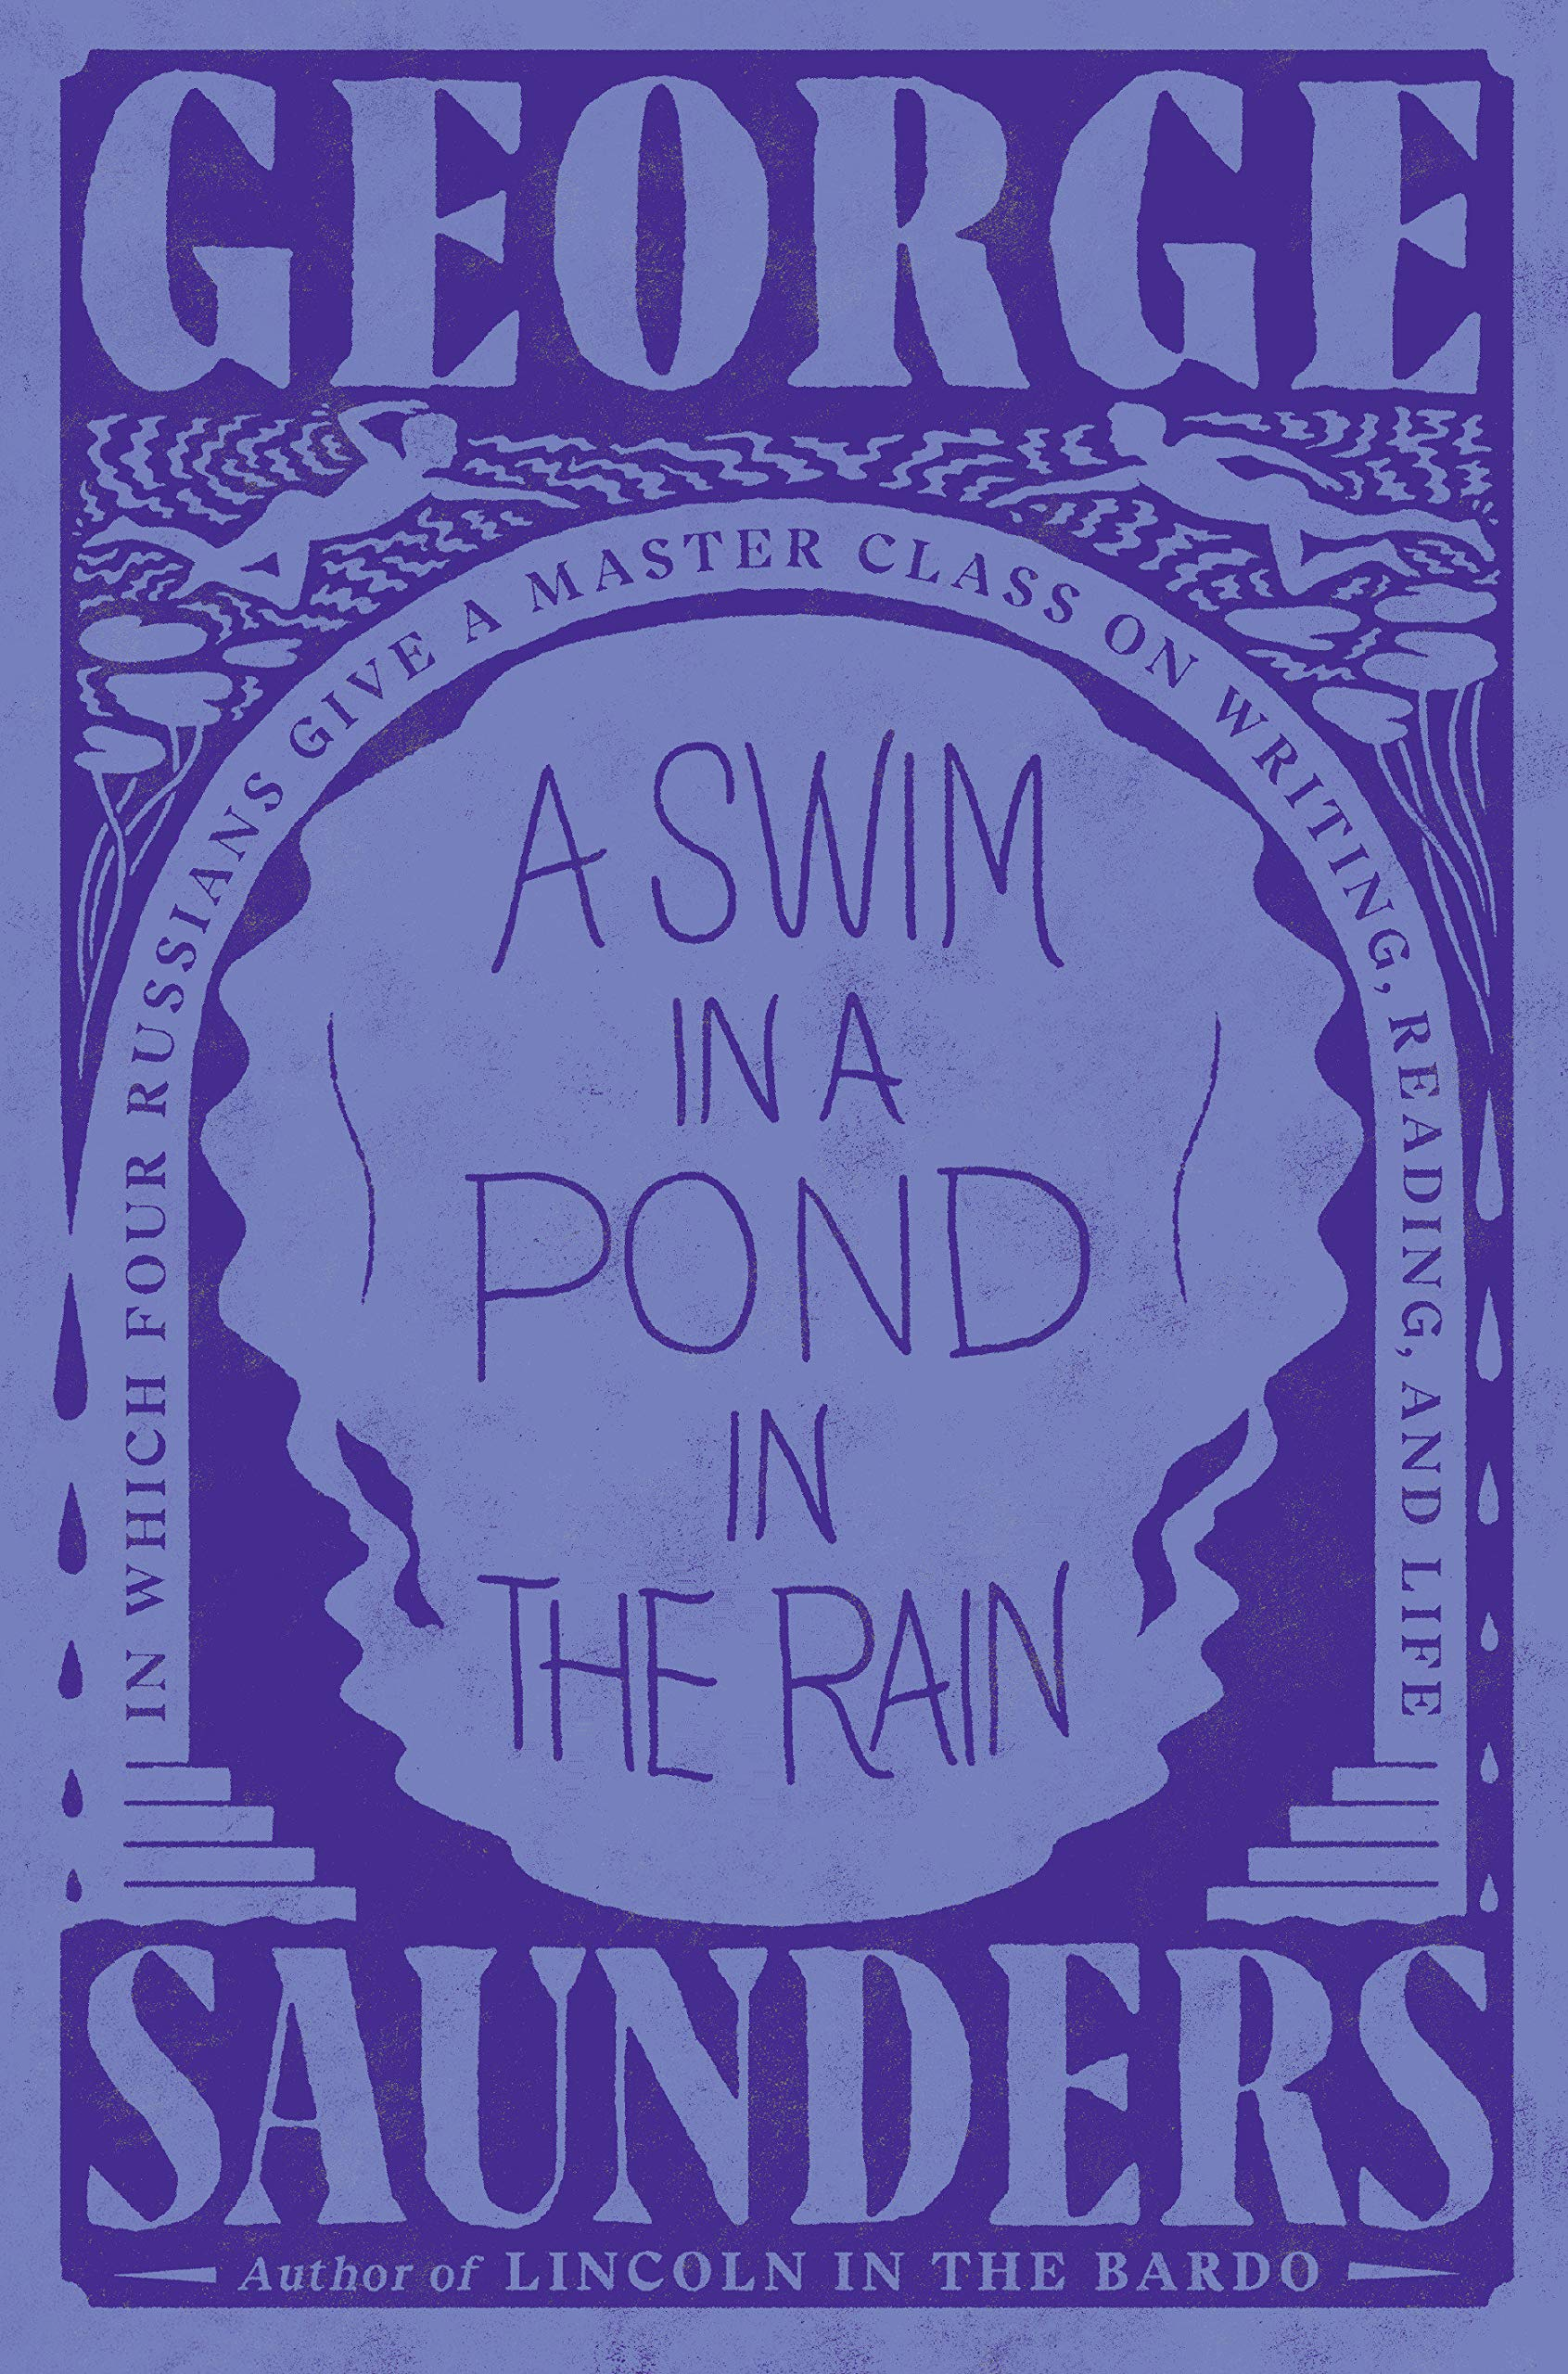 Amazon.com: A Swim in a Pond in the Rain: In Which Four Russians Give a  Master Class on Writing, Reading, and Life (9781984856029): Saunders,  George: Books